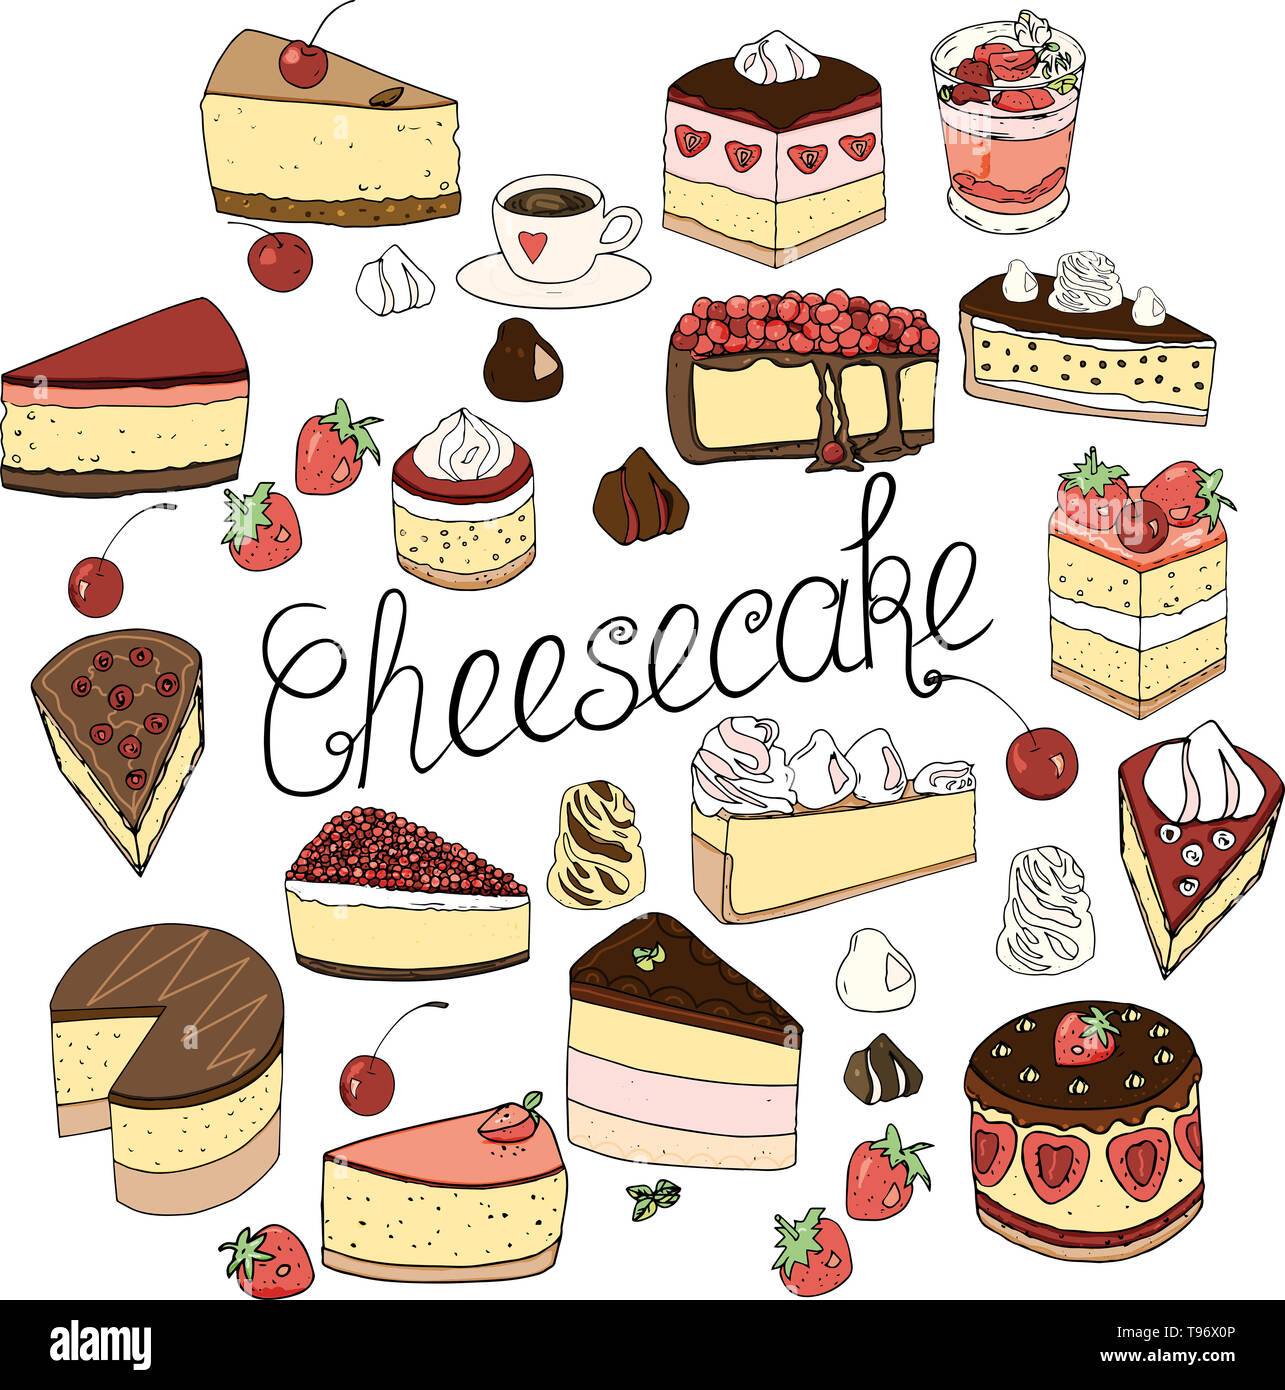 A set of cheesecake consists of elements of cakes and pastries, isolated doodle set design decoration and drawn by hand in the style of naive drawing. - Stock Image